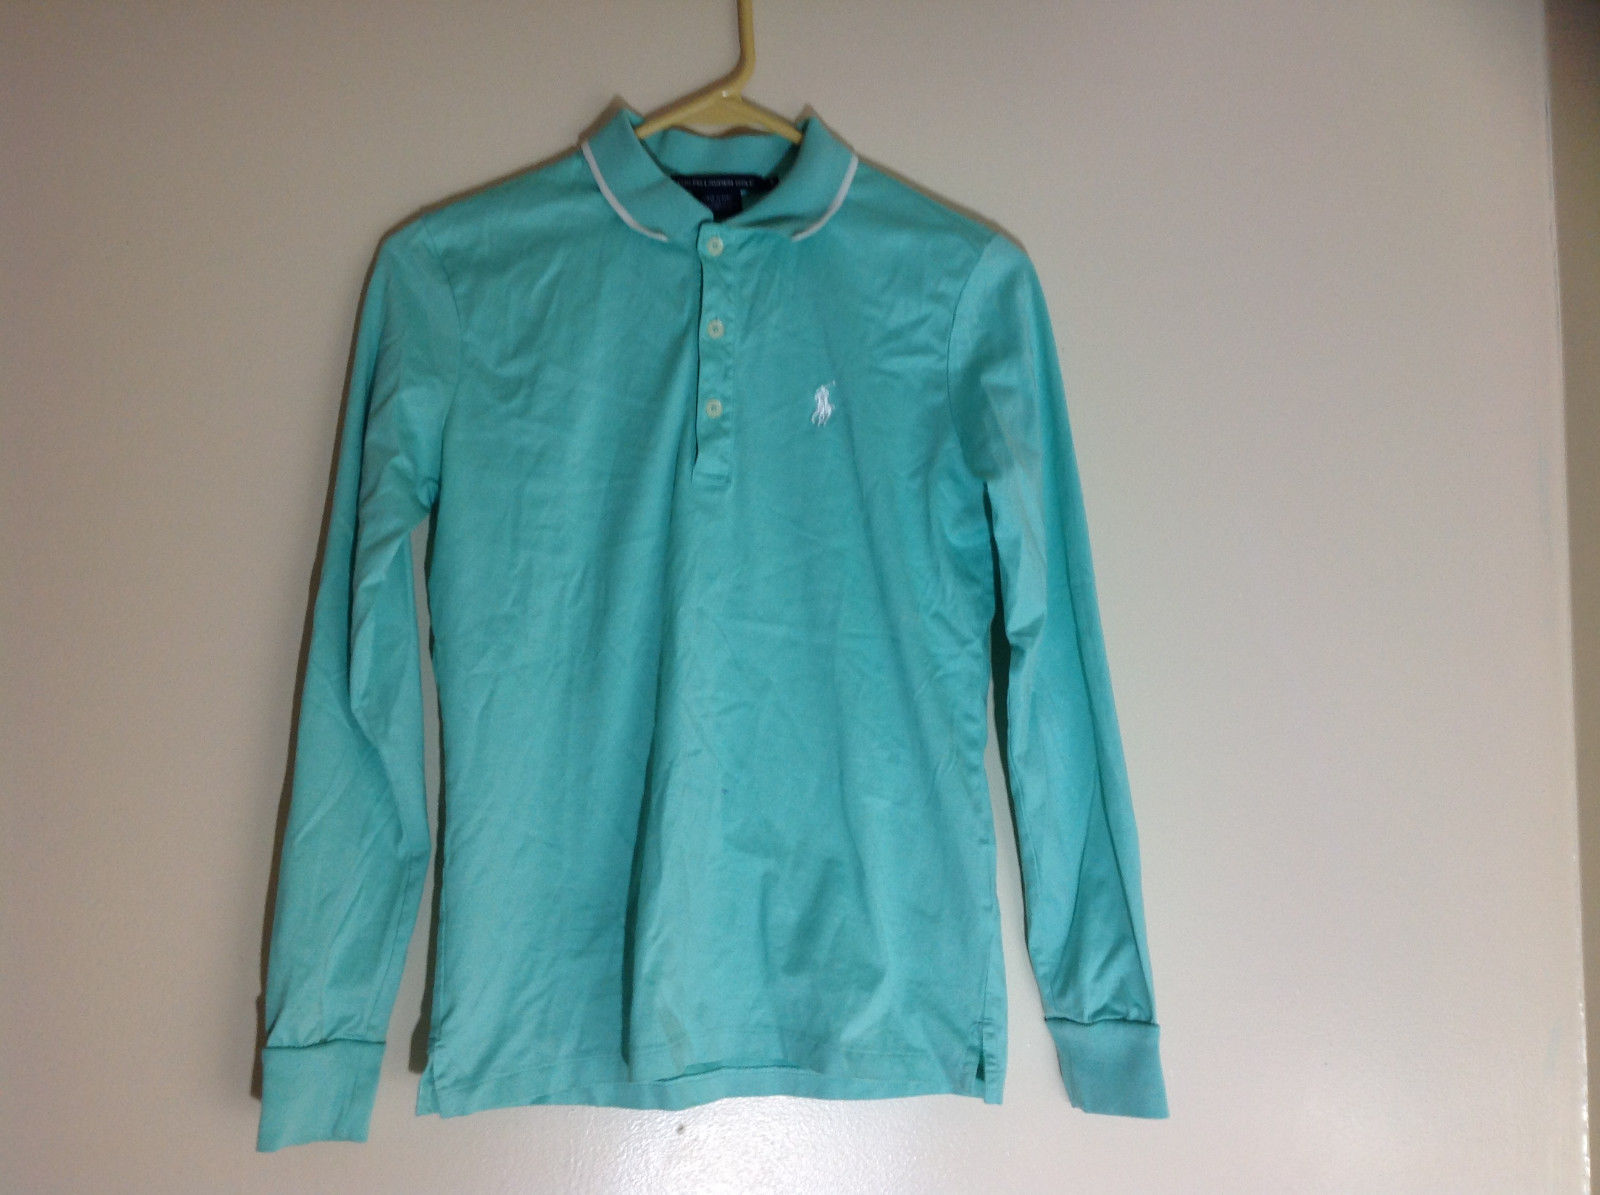 Ralph Lauren Golf Teal Mint Long Sleeve Polo Shirt Small Emblem on Chest Size S